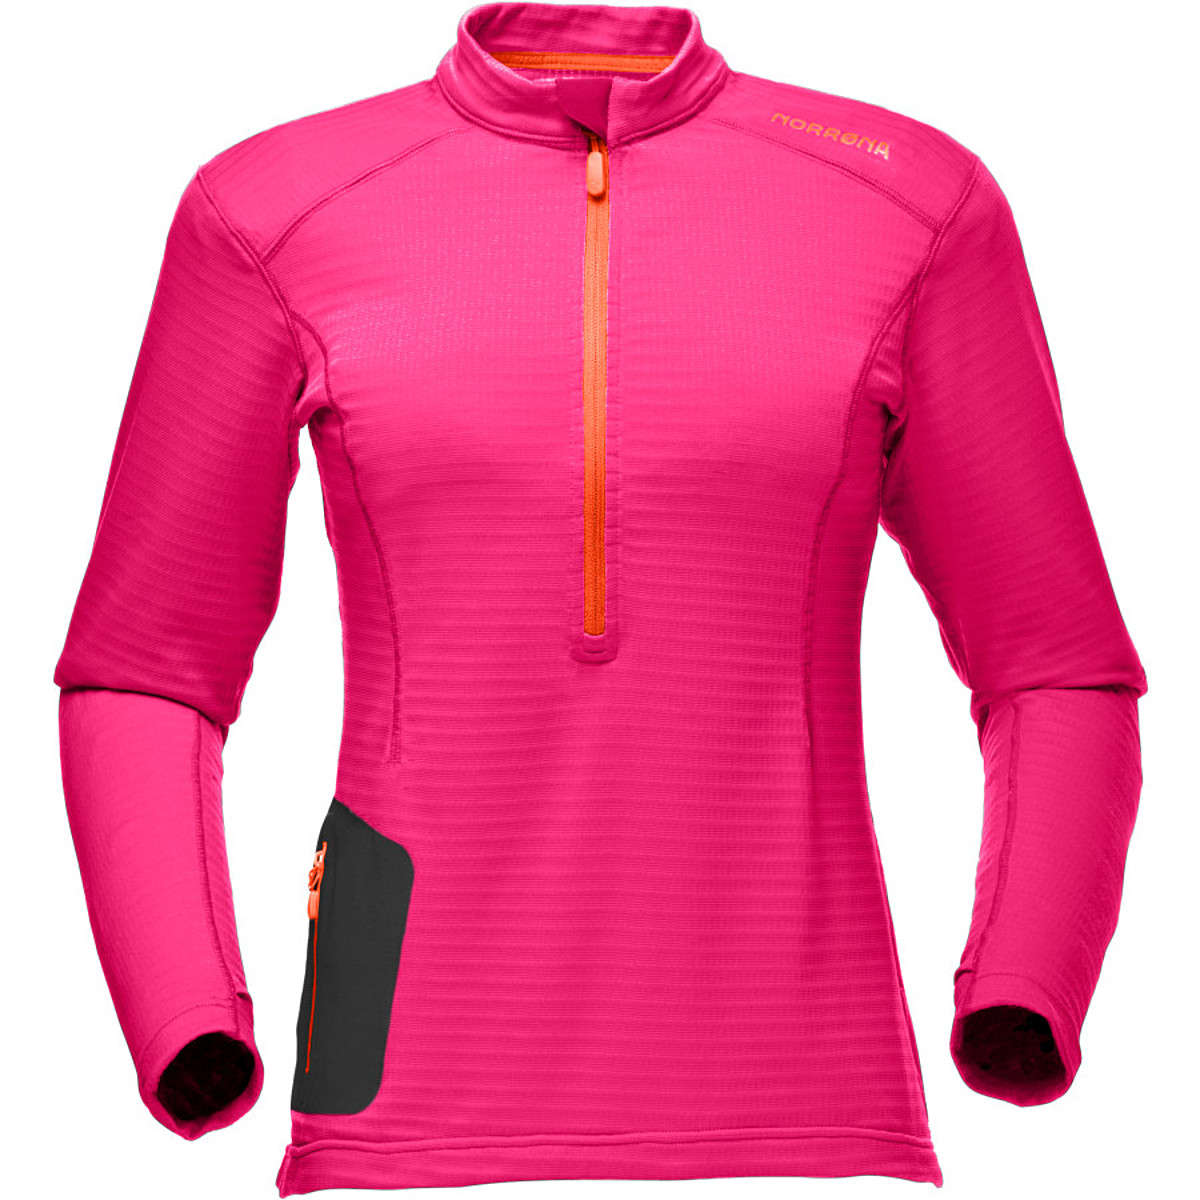 photo: Norrona Bitihorn Equalizer+ Zip Neck Shirt base layer top